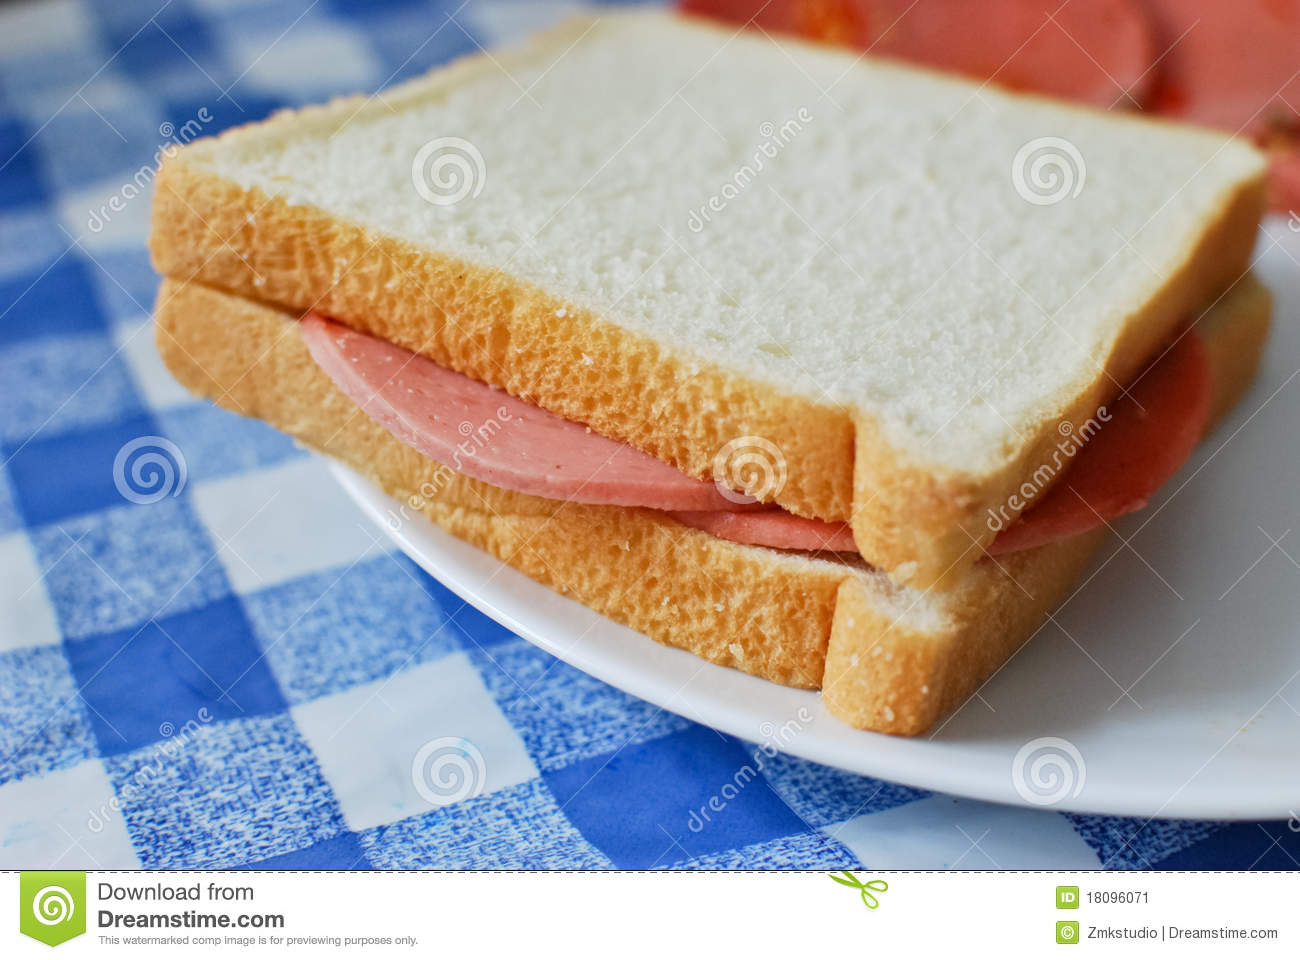 Tony Baloney Sandwich additionally Blood Tongue Sausage together with 9 Sketchy Deli Meats That Almost Make Me Want To Be Vegan together with Nachos Lunchable Fan Club also 39476934214063414. on bologna lunch meat